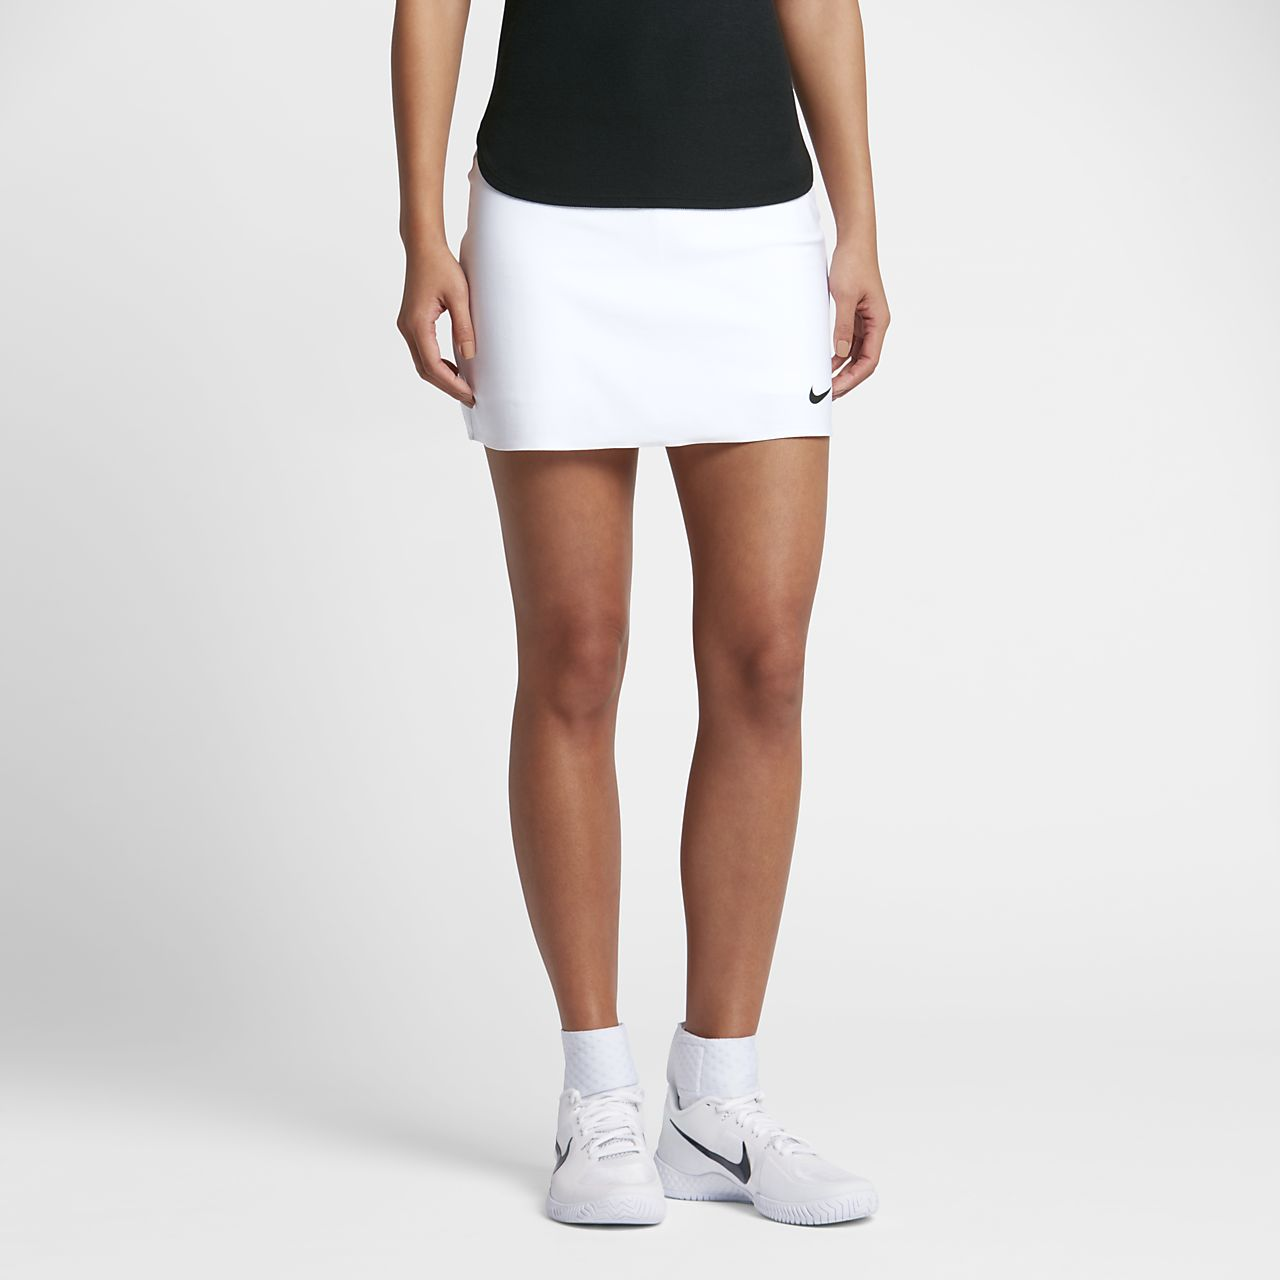 cfed63d01fff0 NikeCourt Power Spin Women s Tennis Skirt. Nike.com AU